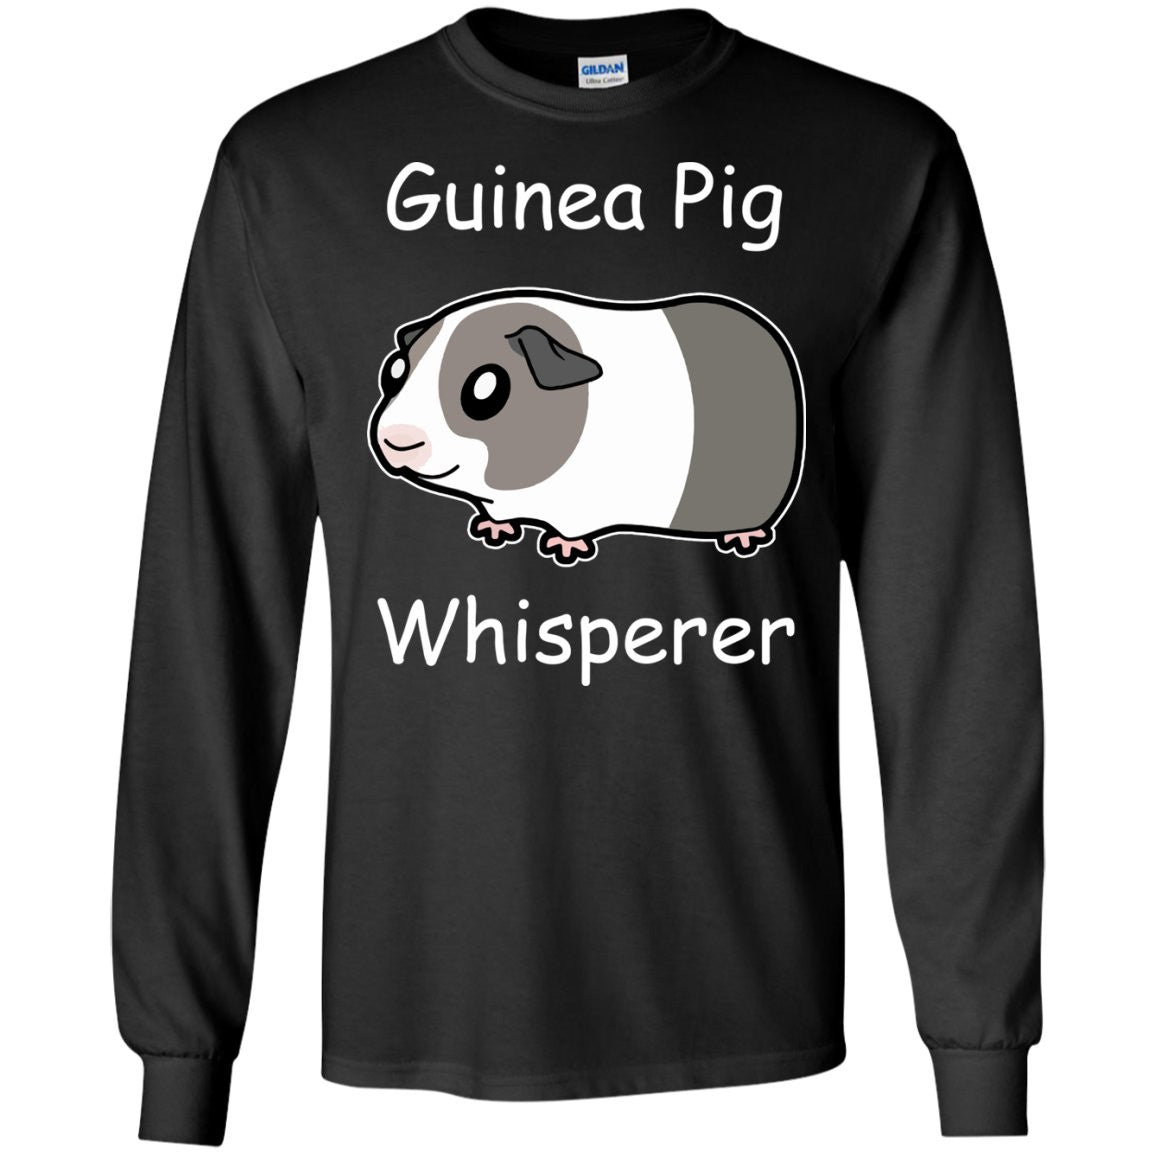 Guinea Pig Whisperer  LS Ultra Cotton Tshirt